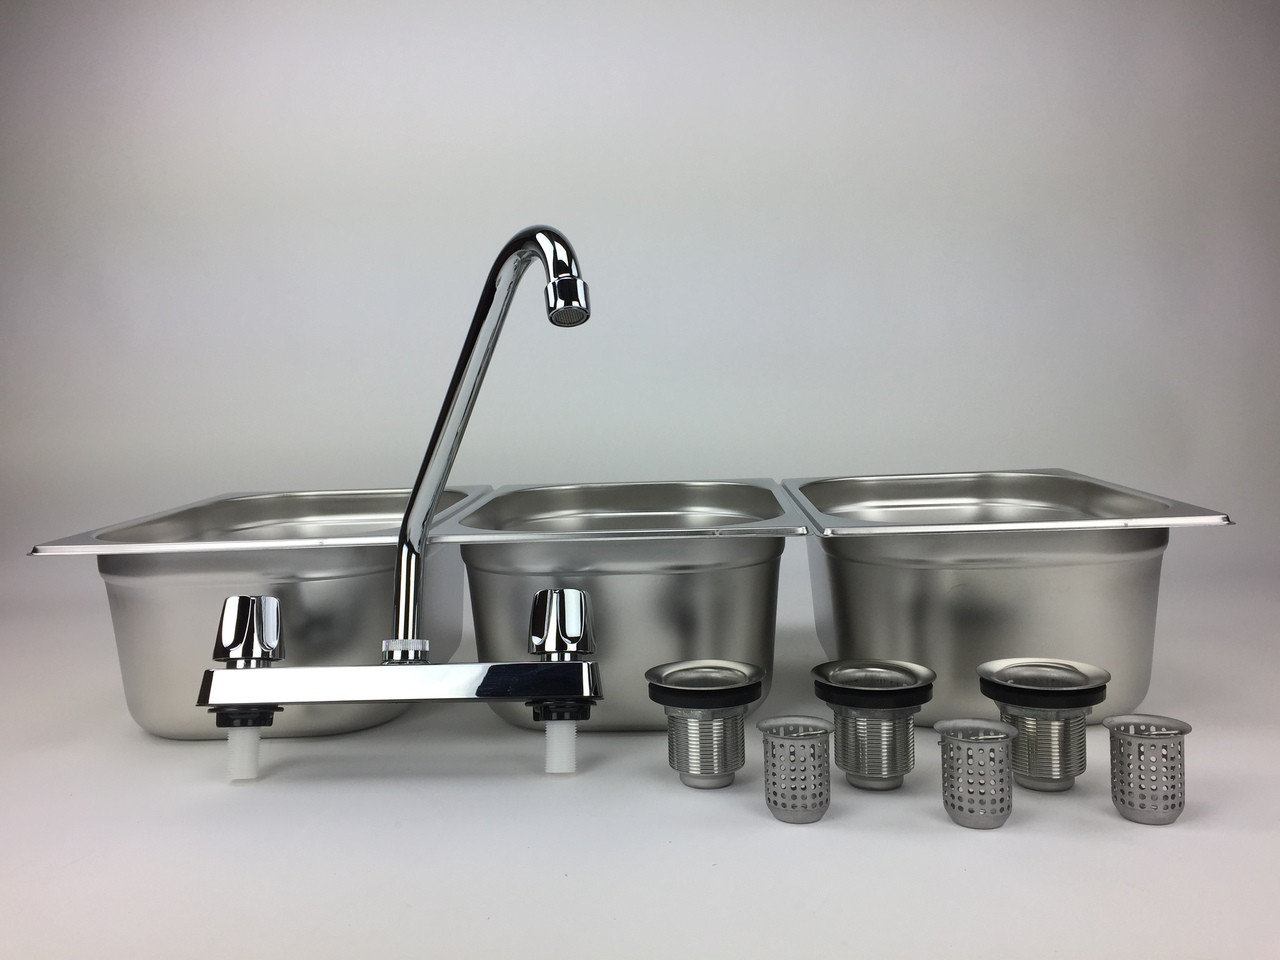 4 basin sink with faucets and drains left angled view